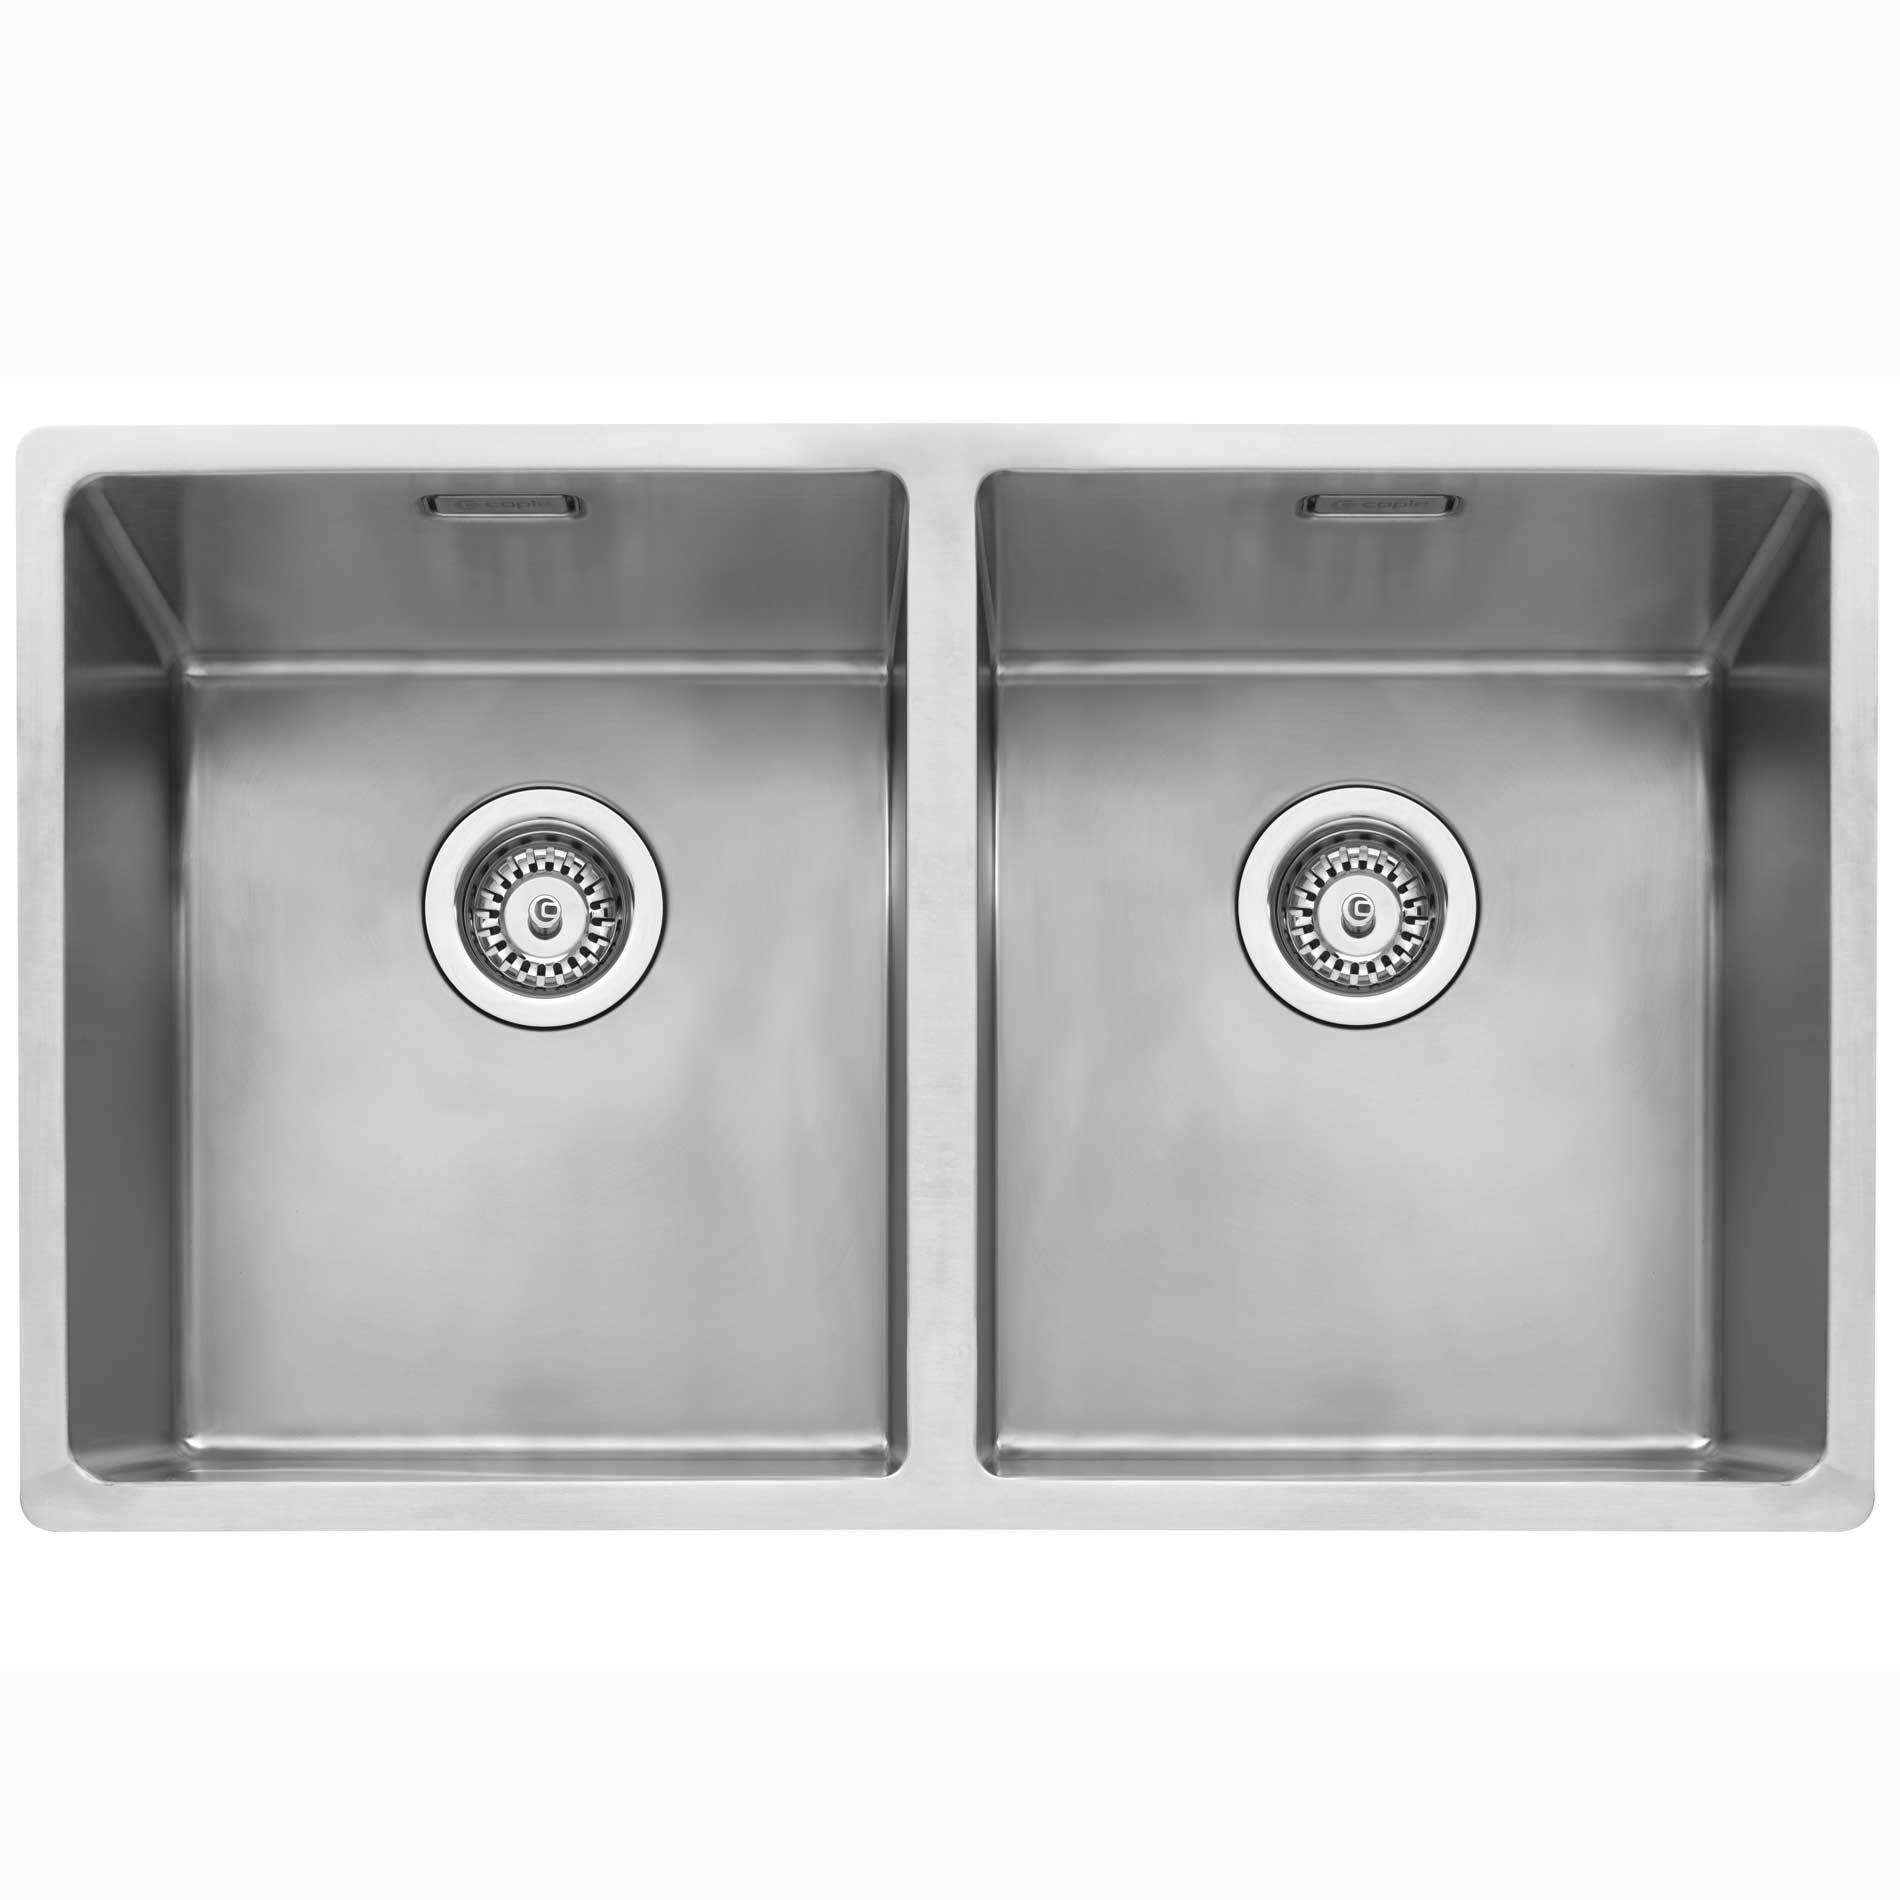 Caple mode 3434 stainless steel sink kitchen sinks taps for 200mm wide kitchen unit